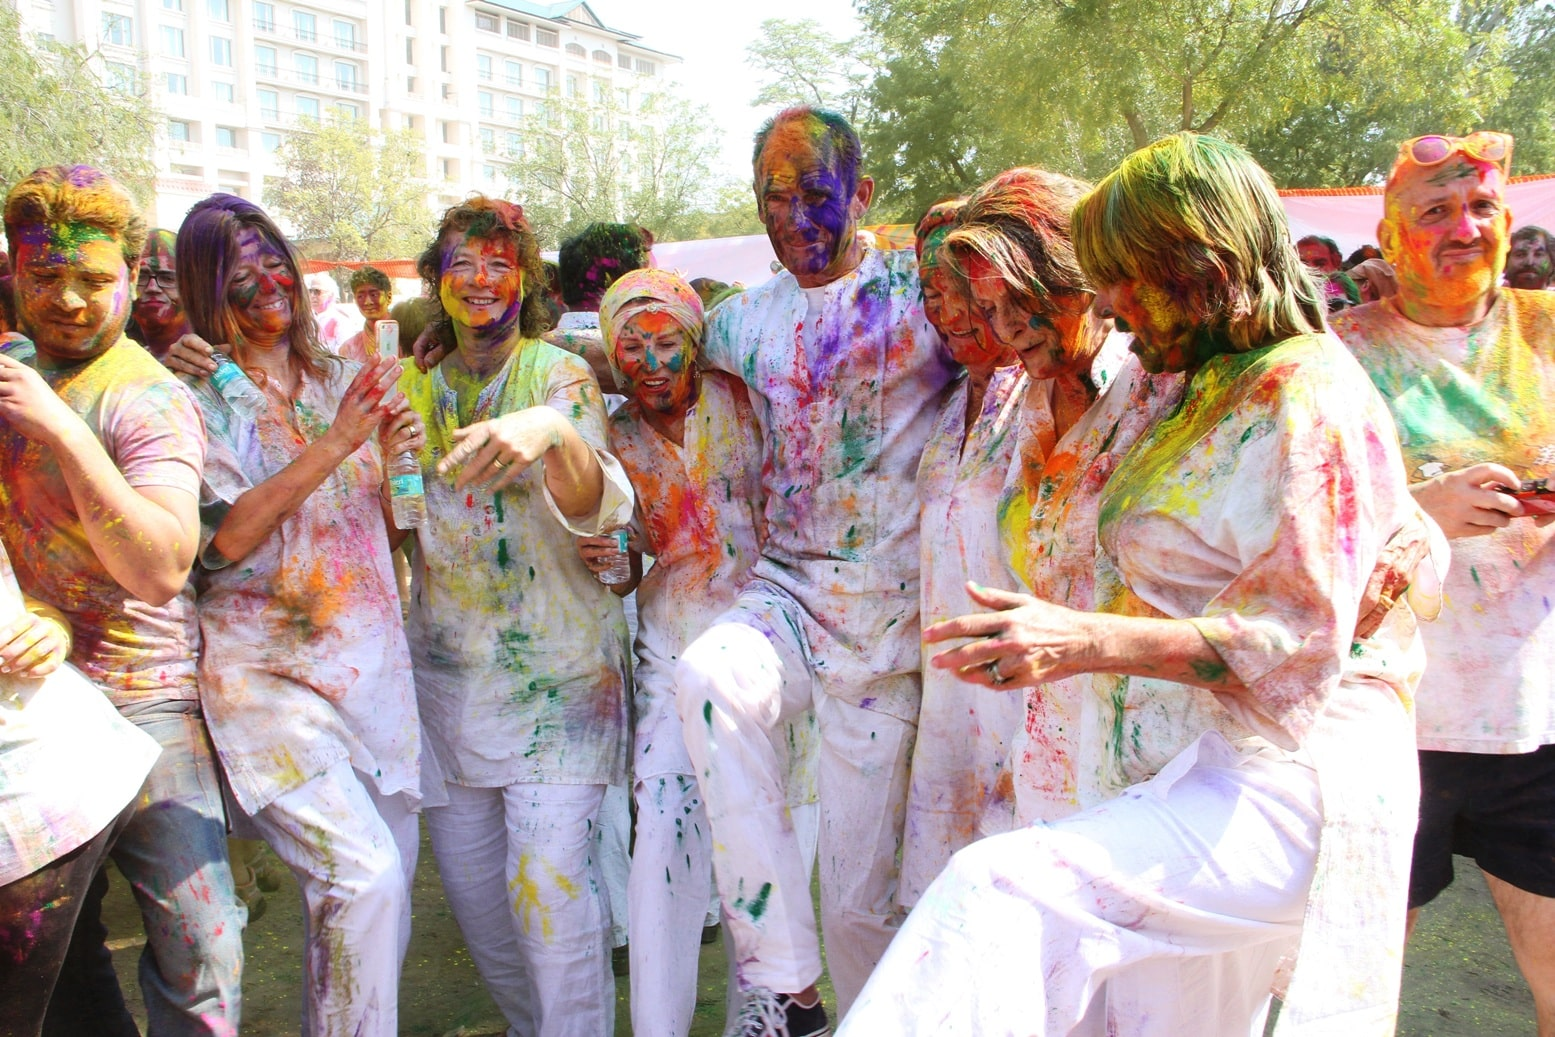 Jaipur, 5th best place to celebrate holi in India